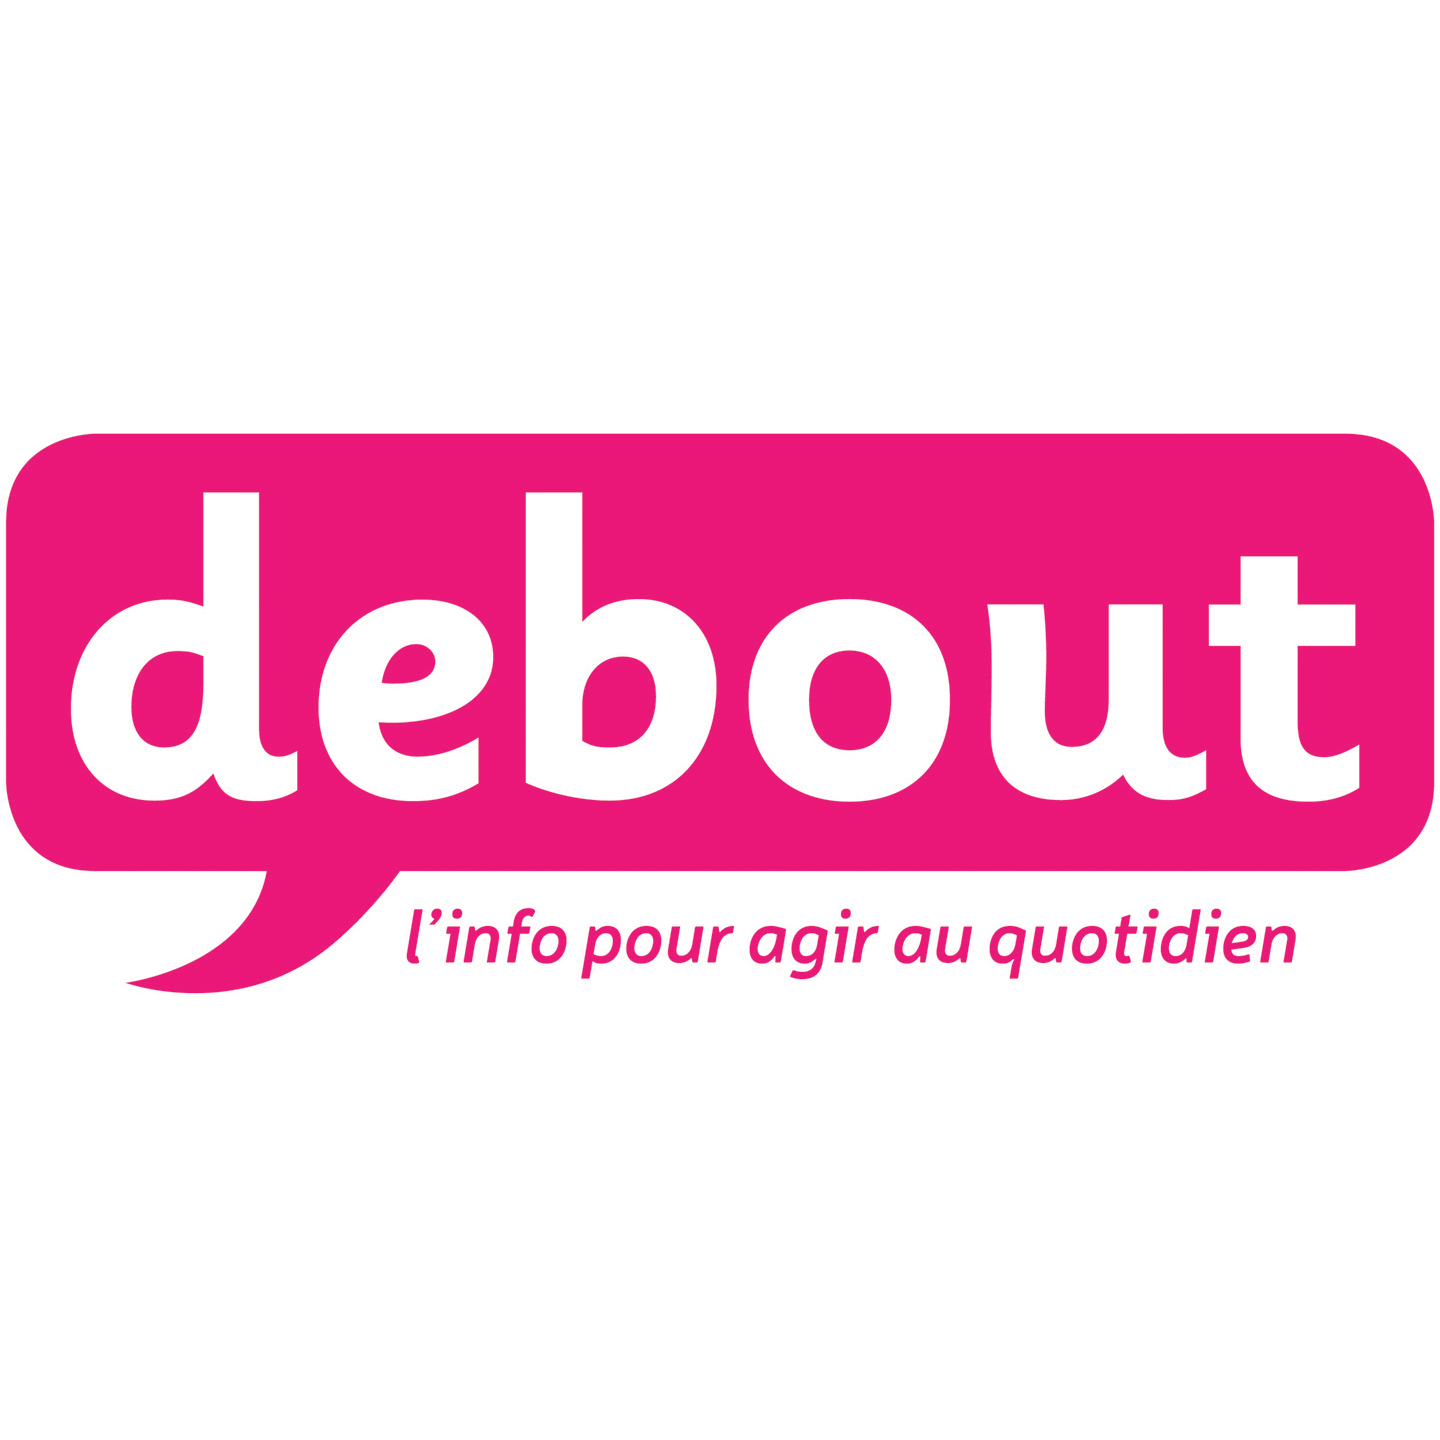 Association - Association debout